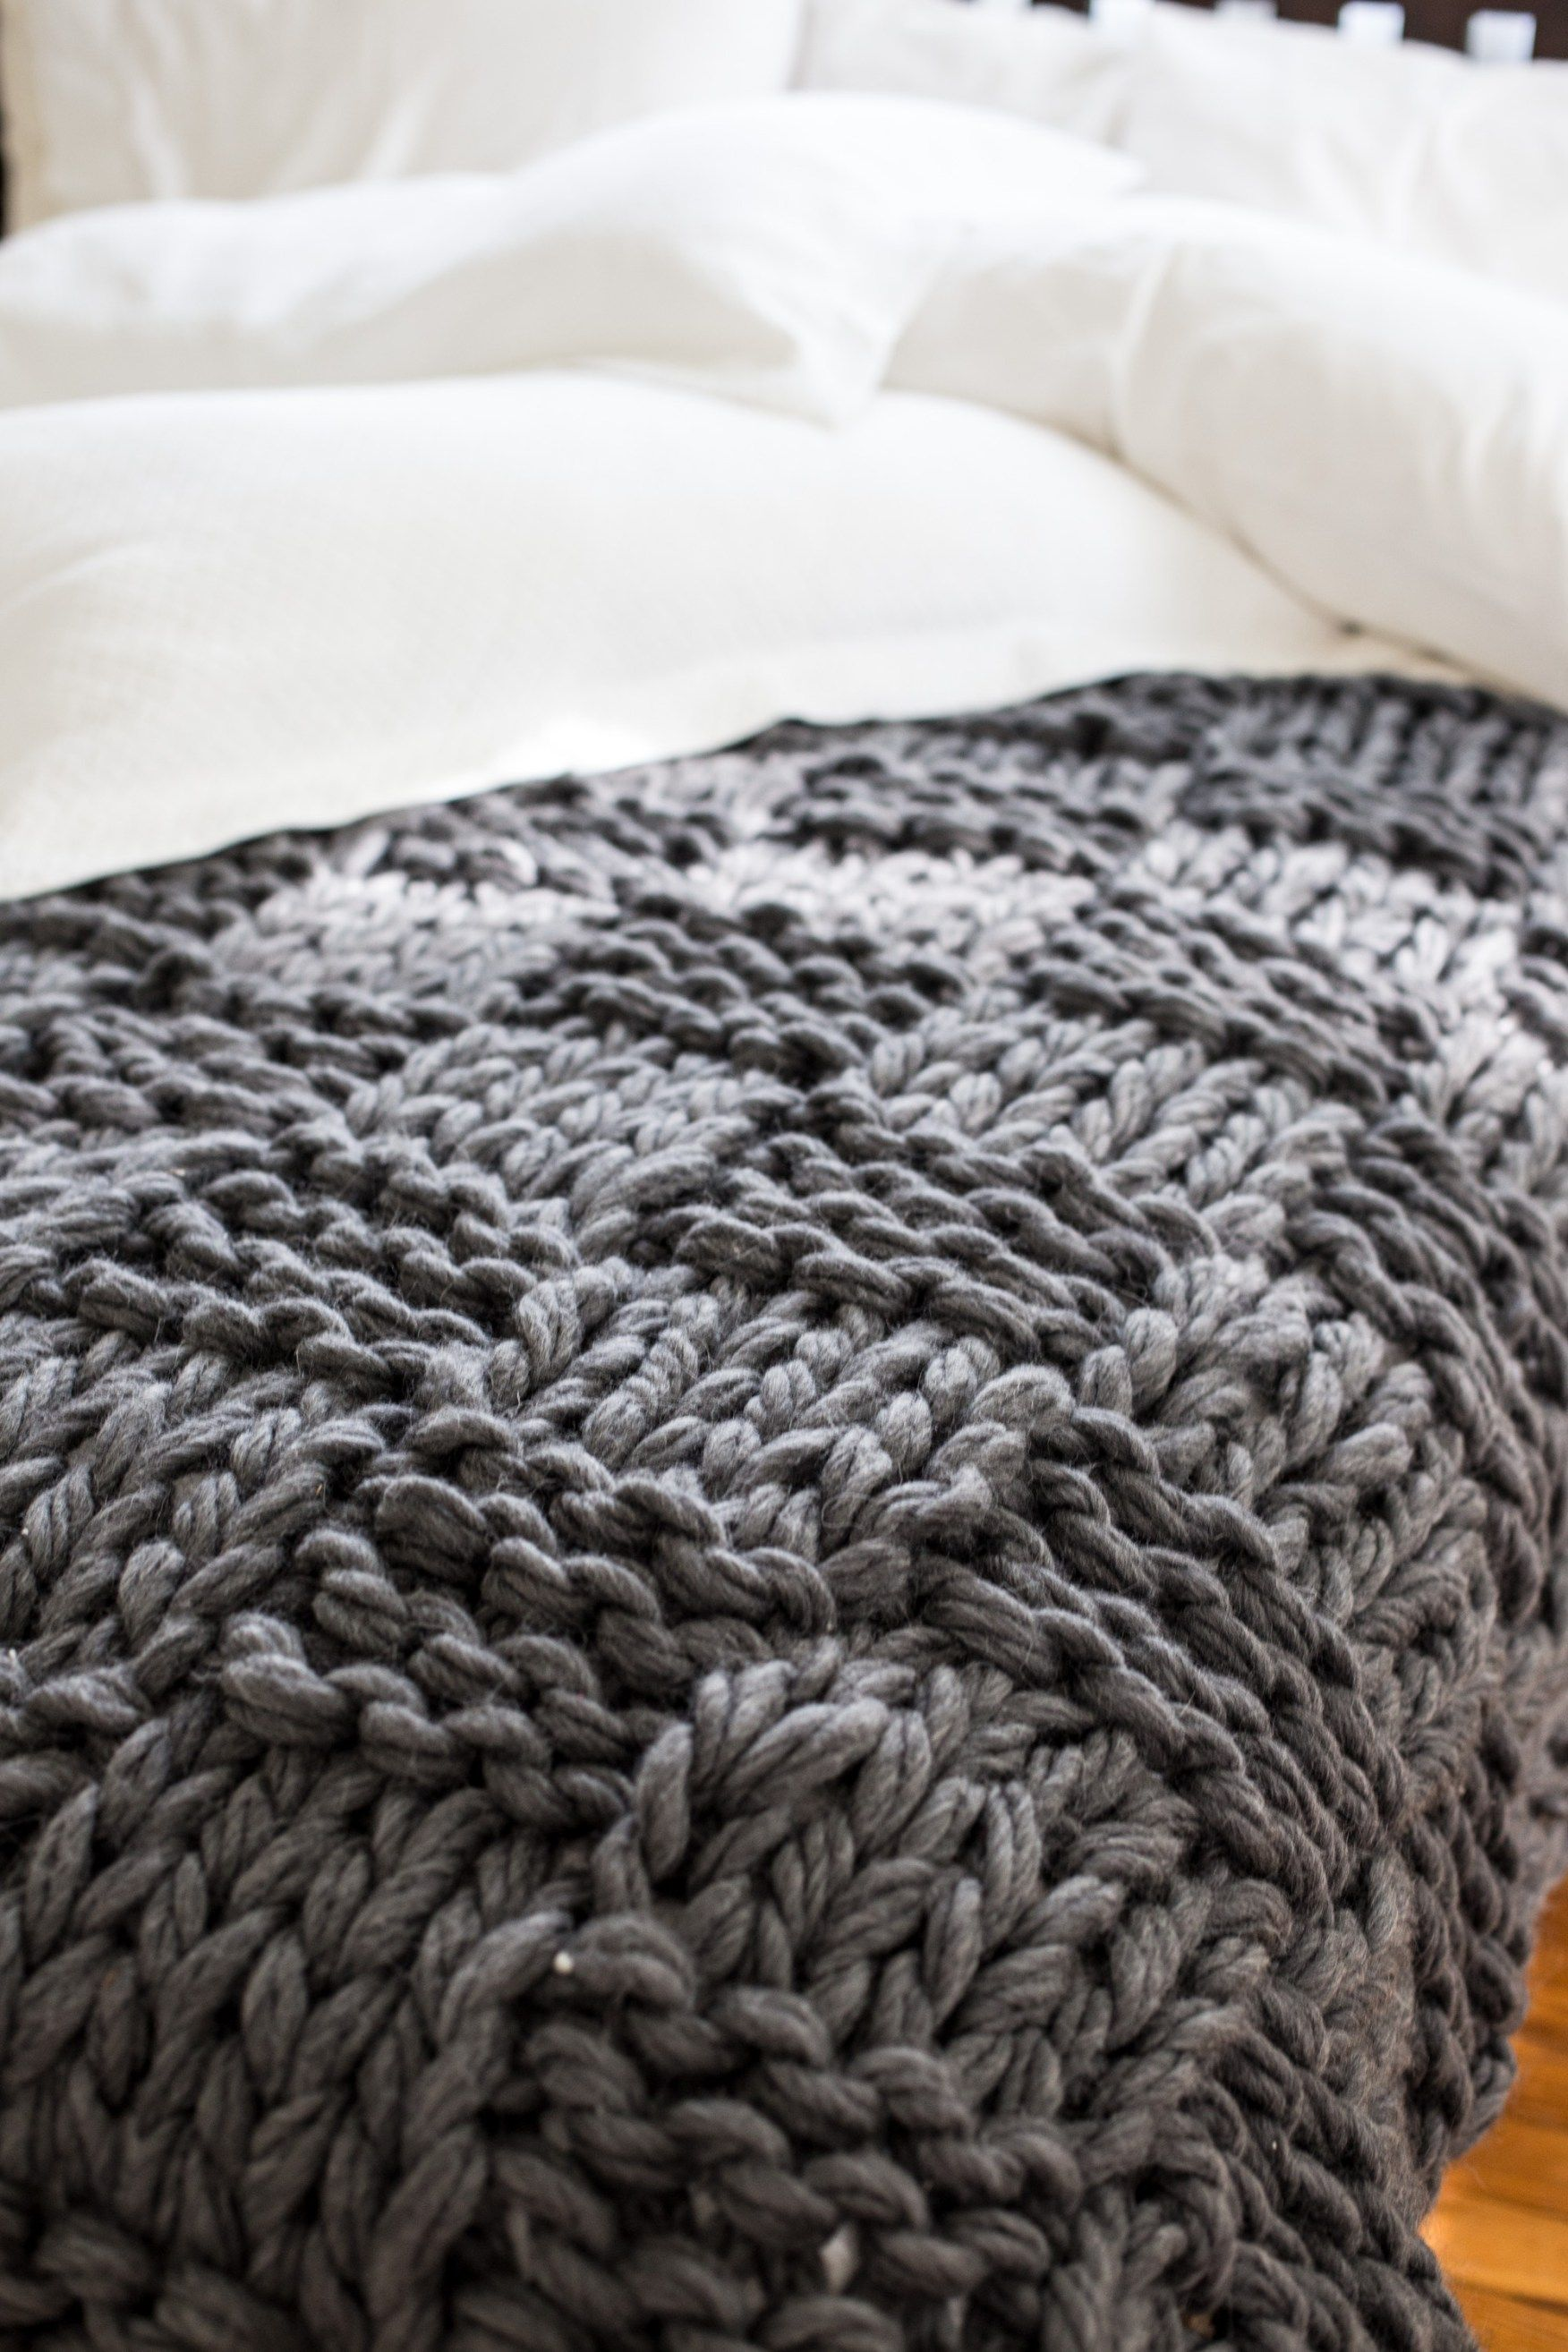 Chunky Arm Knit Blanket Pattern | Knitting blanket patterns, Arm ...